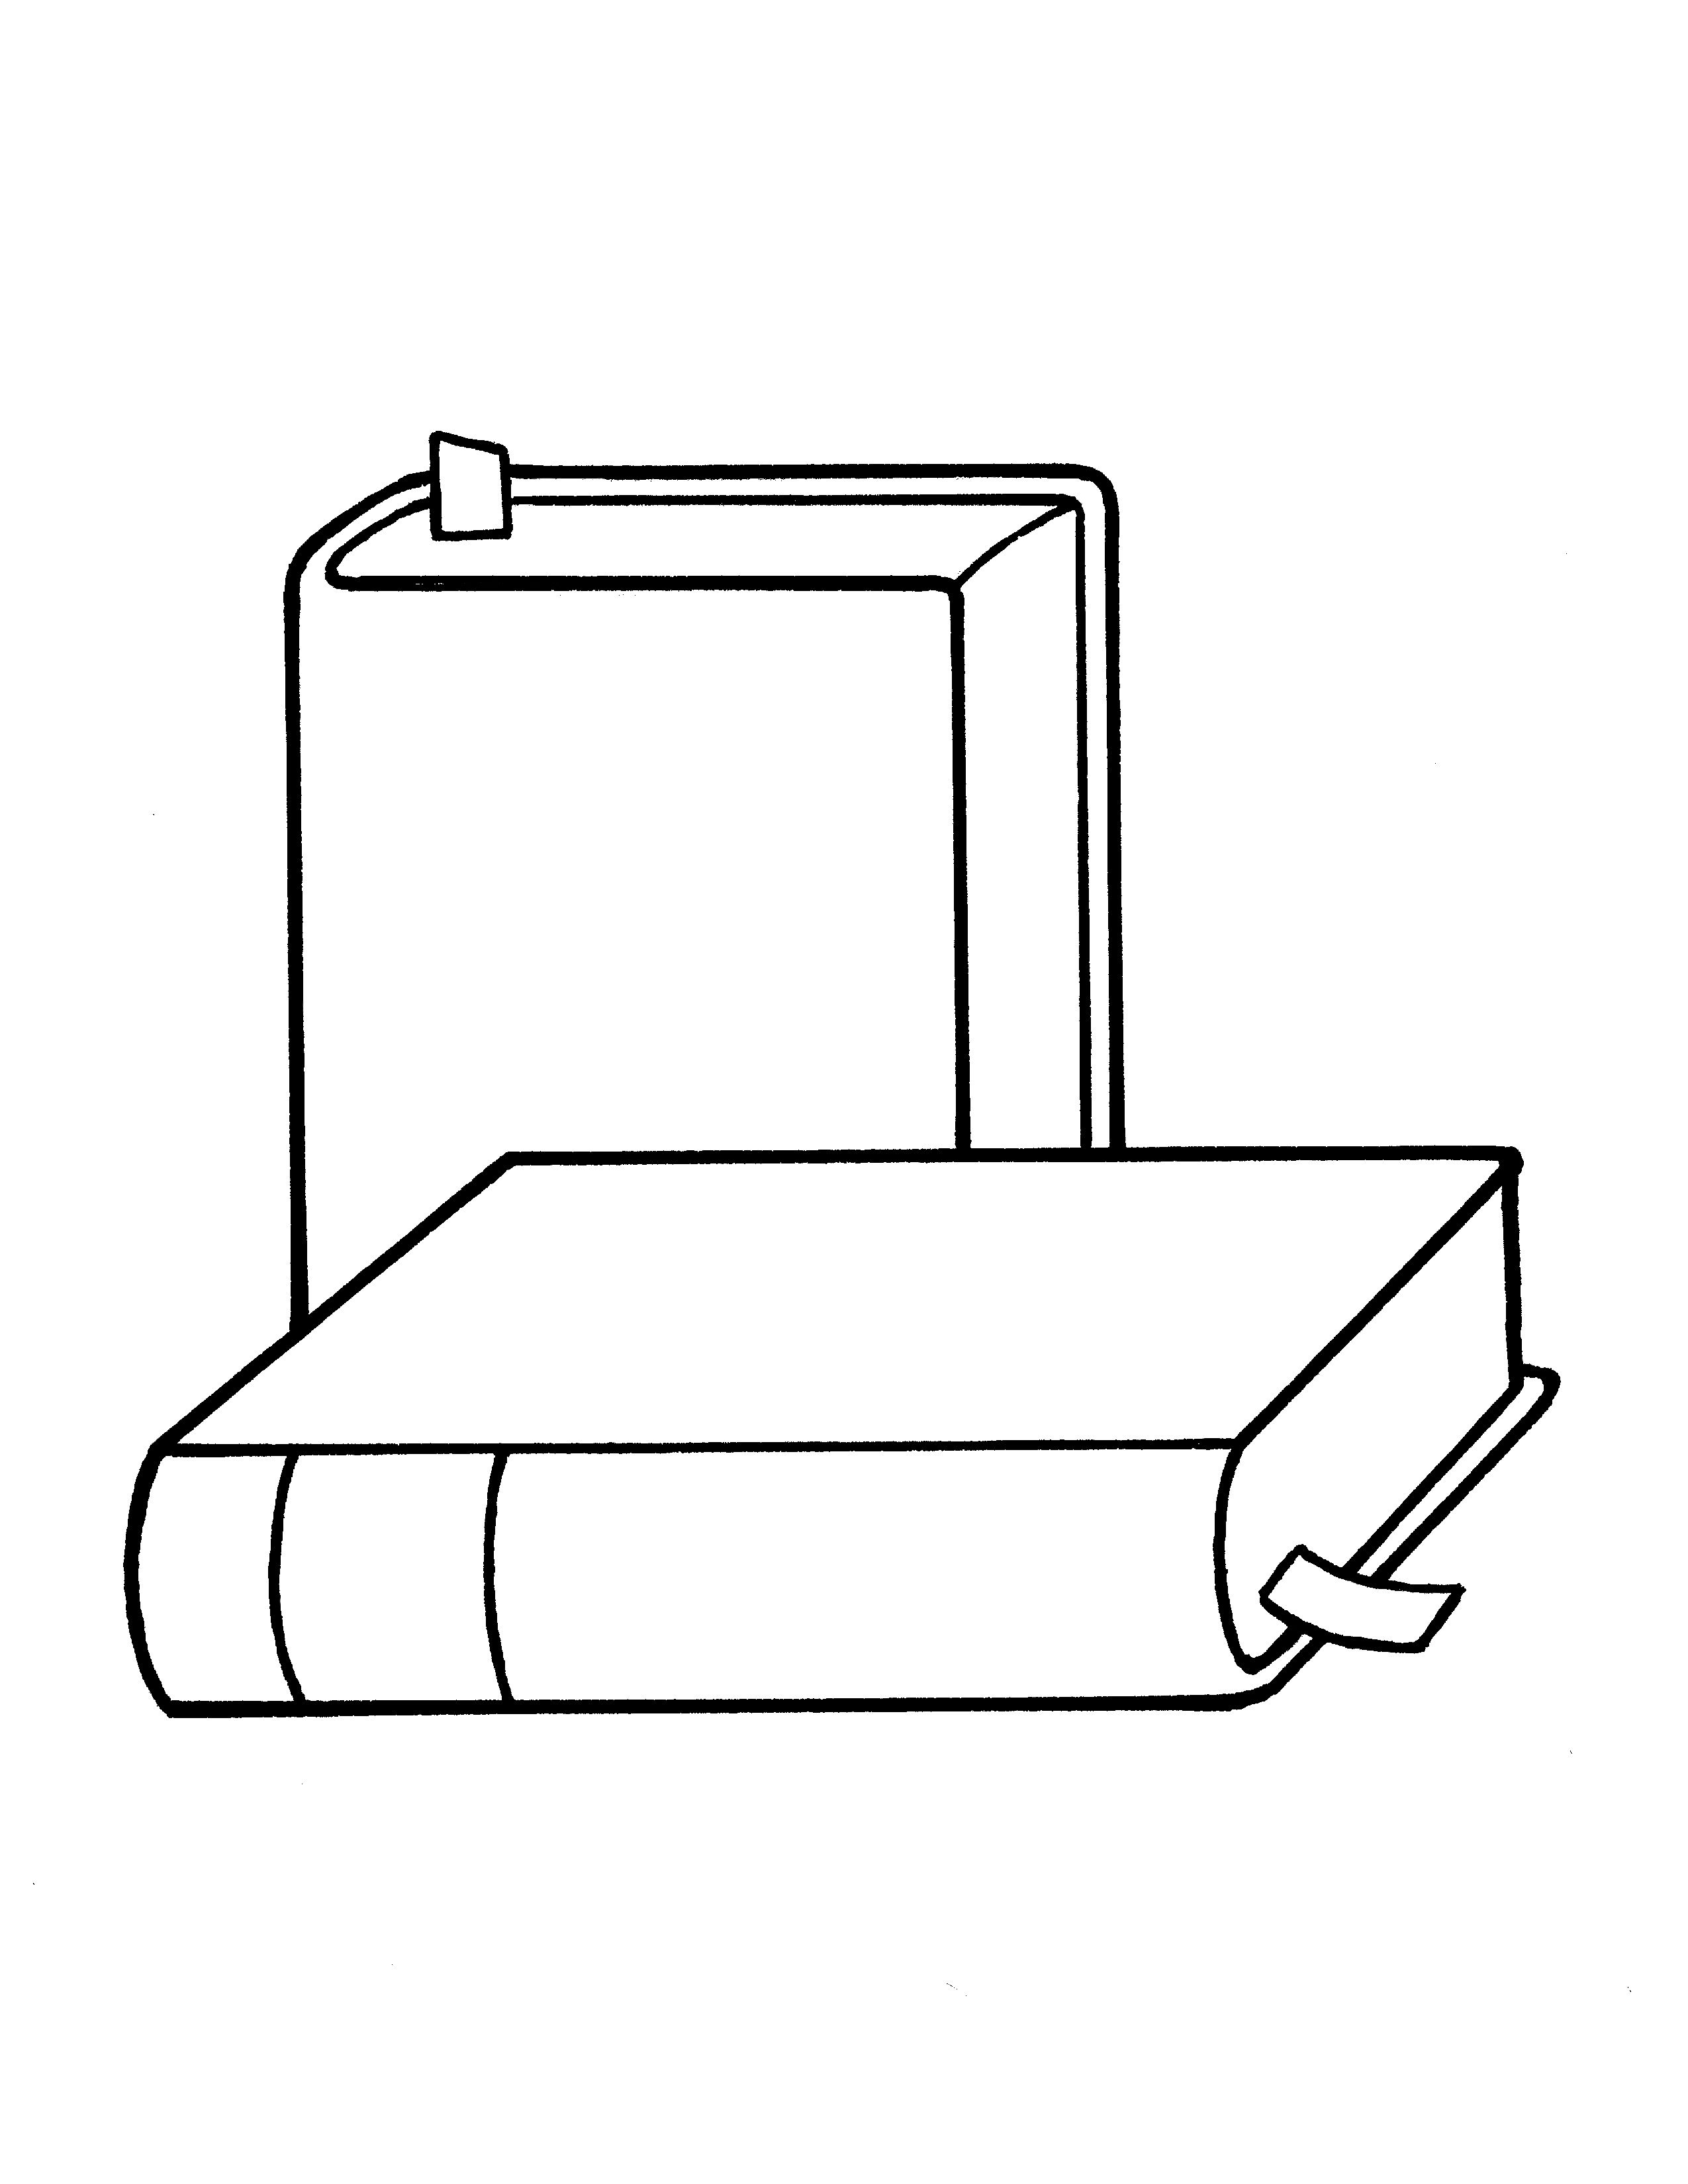 A line drawing of the scriptures, from the nursery manual Behold Your Little Ones (2008), pages 31, 39, and 107.